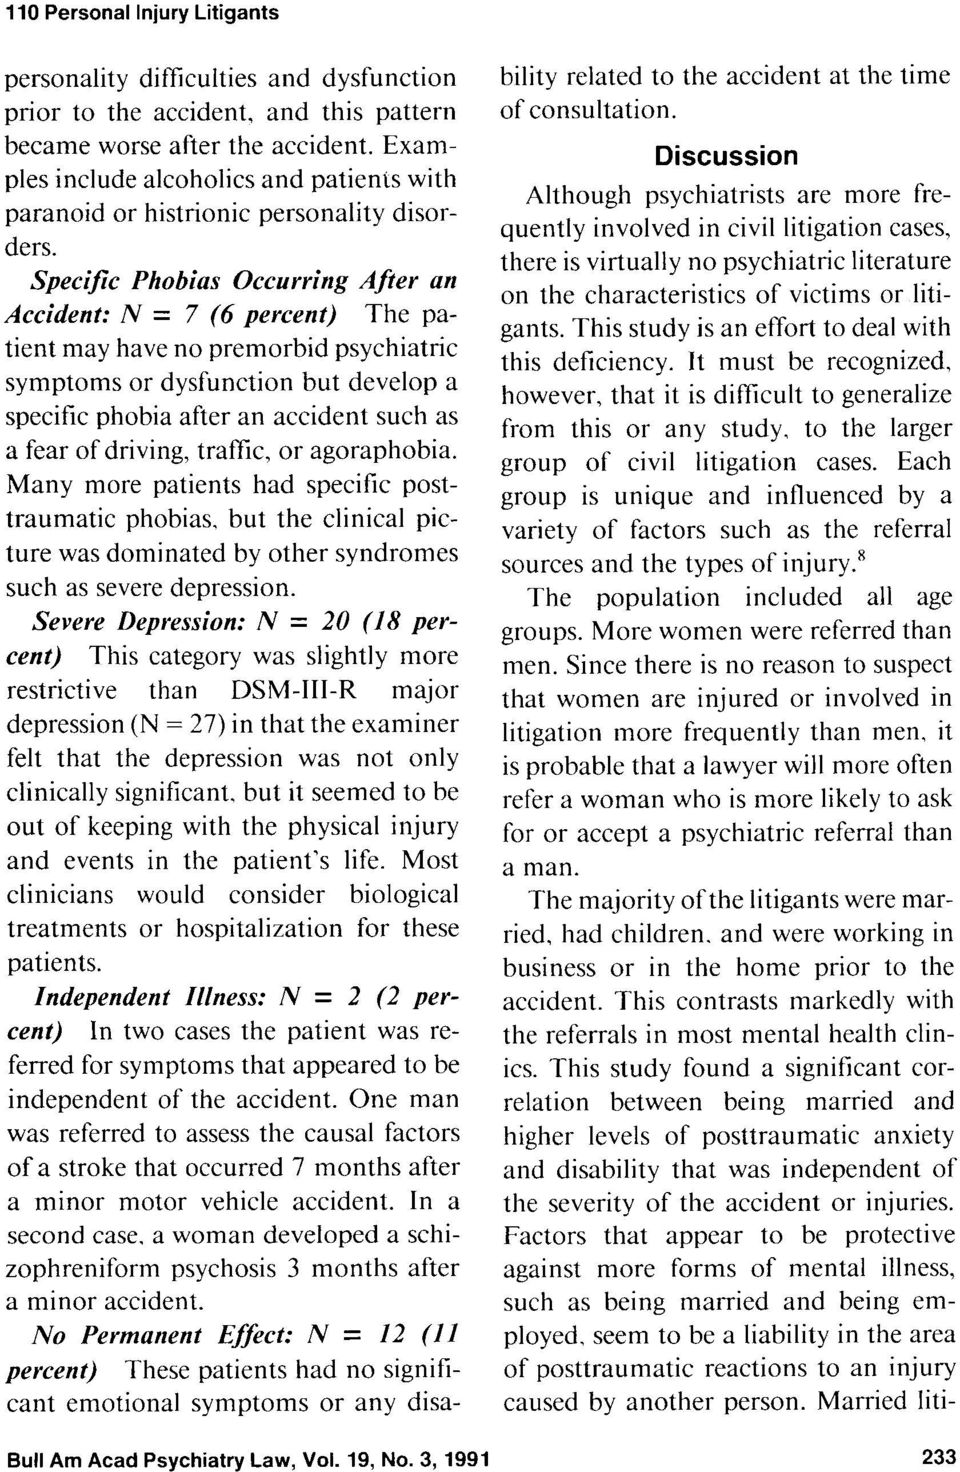 Specific Phobias Occurring After an Accident: N = 7 (6 percent) The patient may have no premorbid psychiatric symptoms or dysfunction but develop a specific phobia after an accident such as a fear of